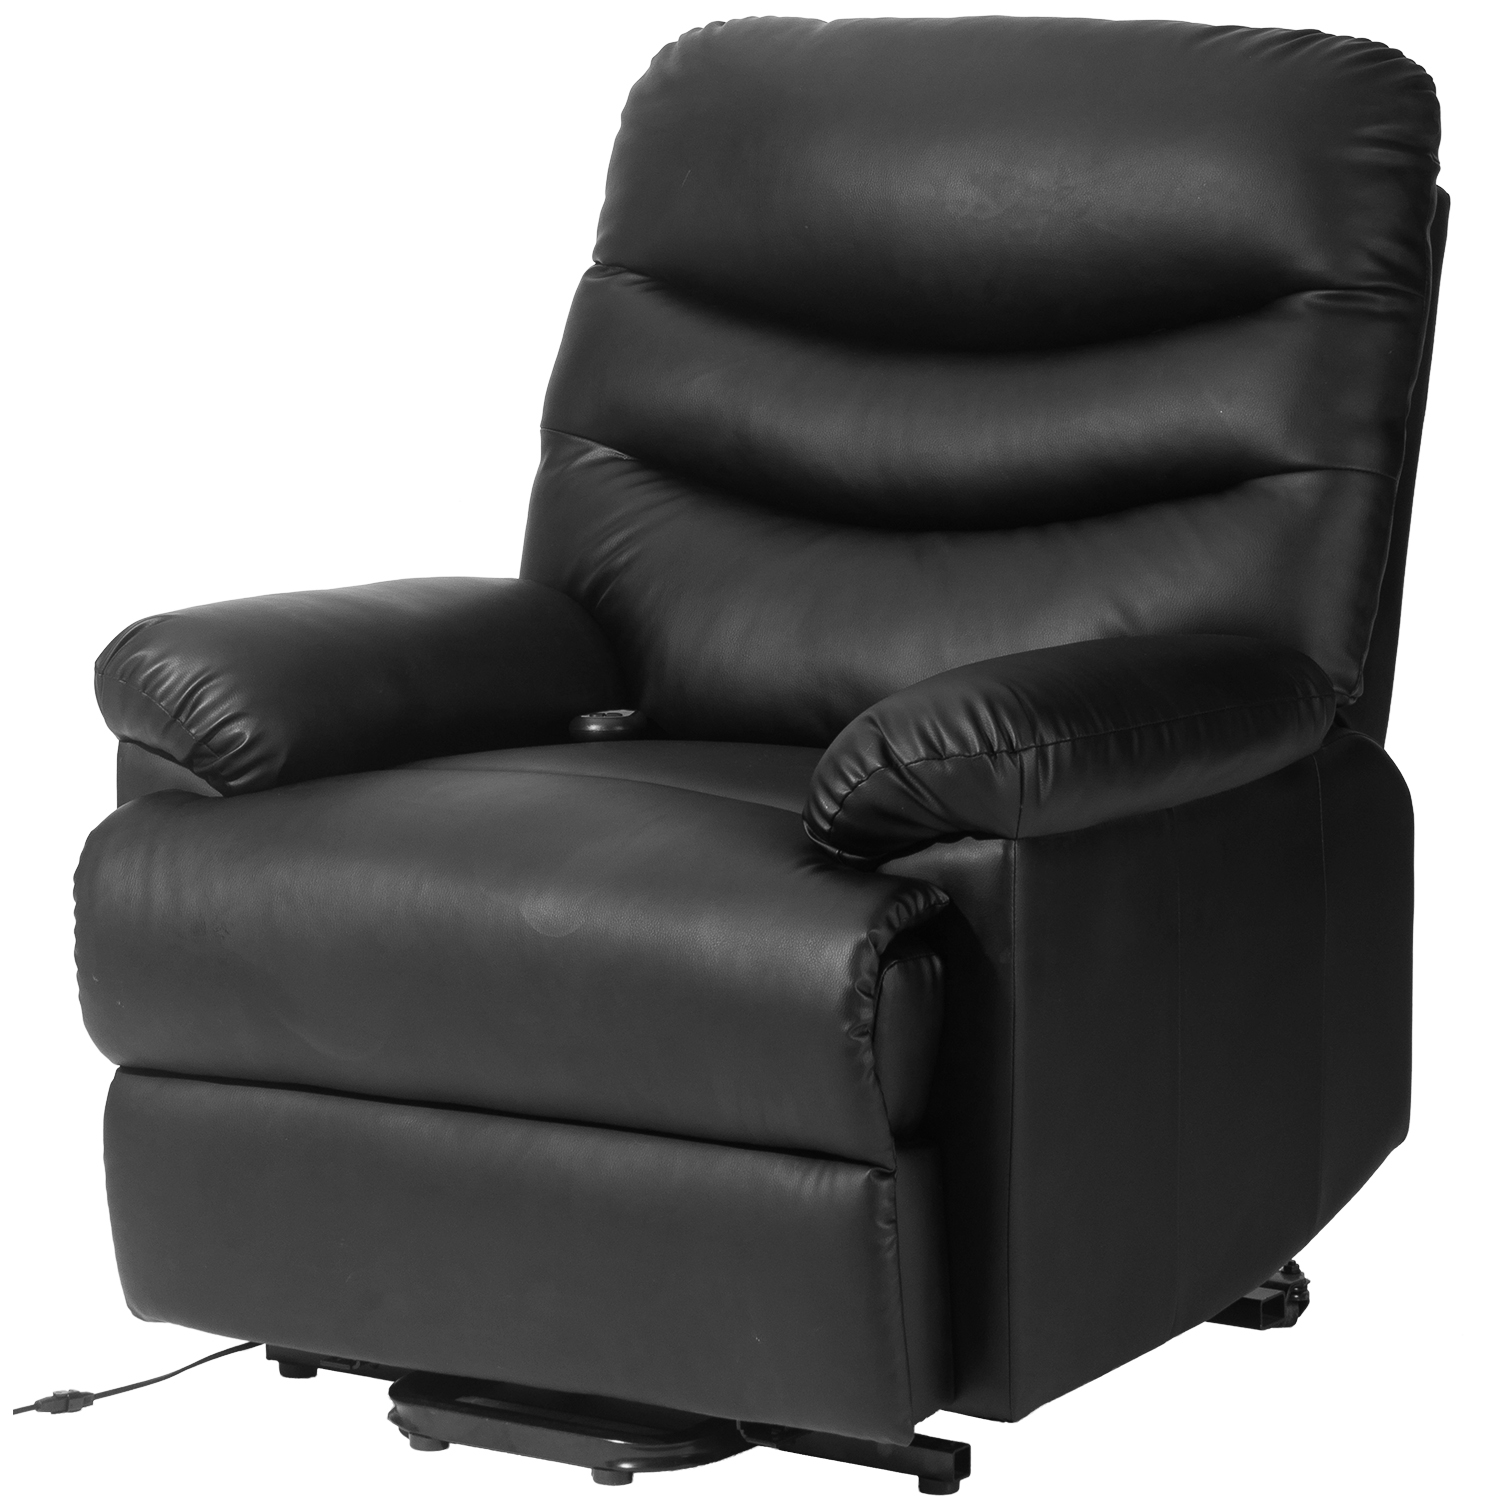 Genial Merax Black PU Leather Power Recliner And Lift Chair Lifting Recliner